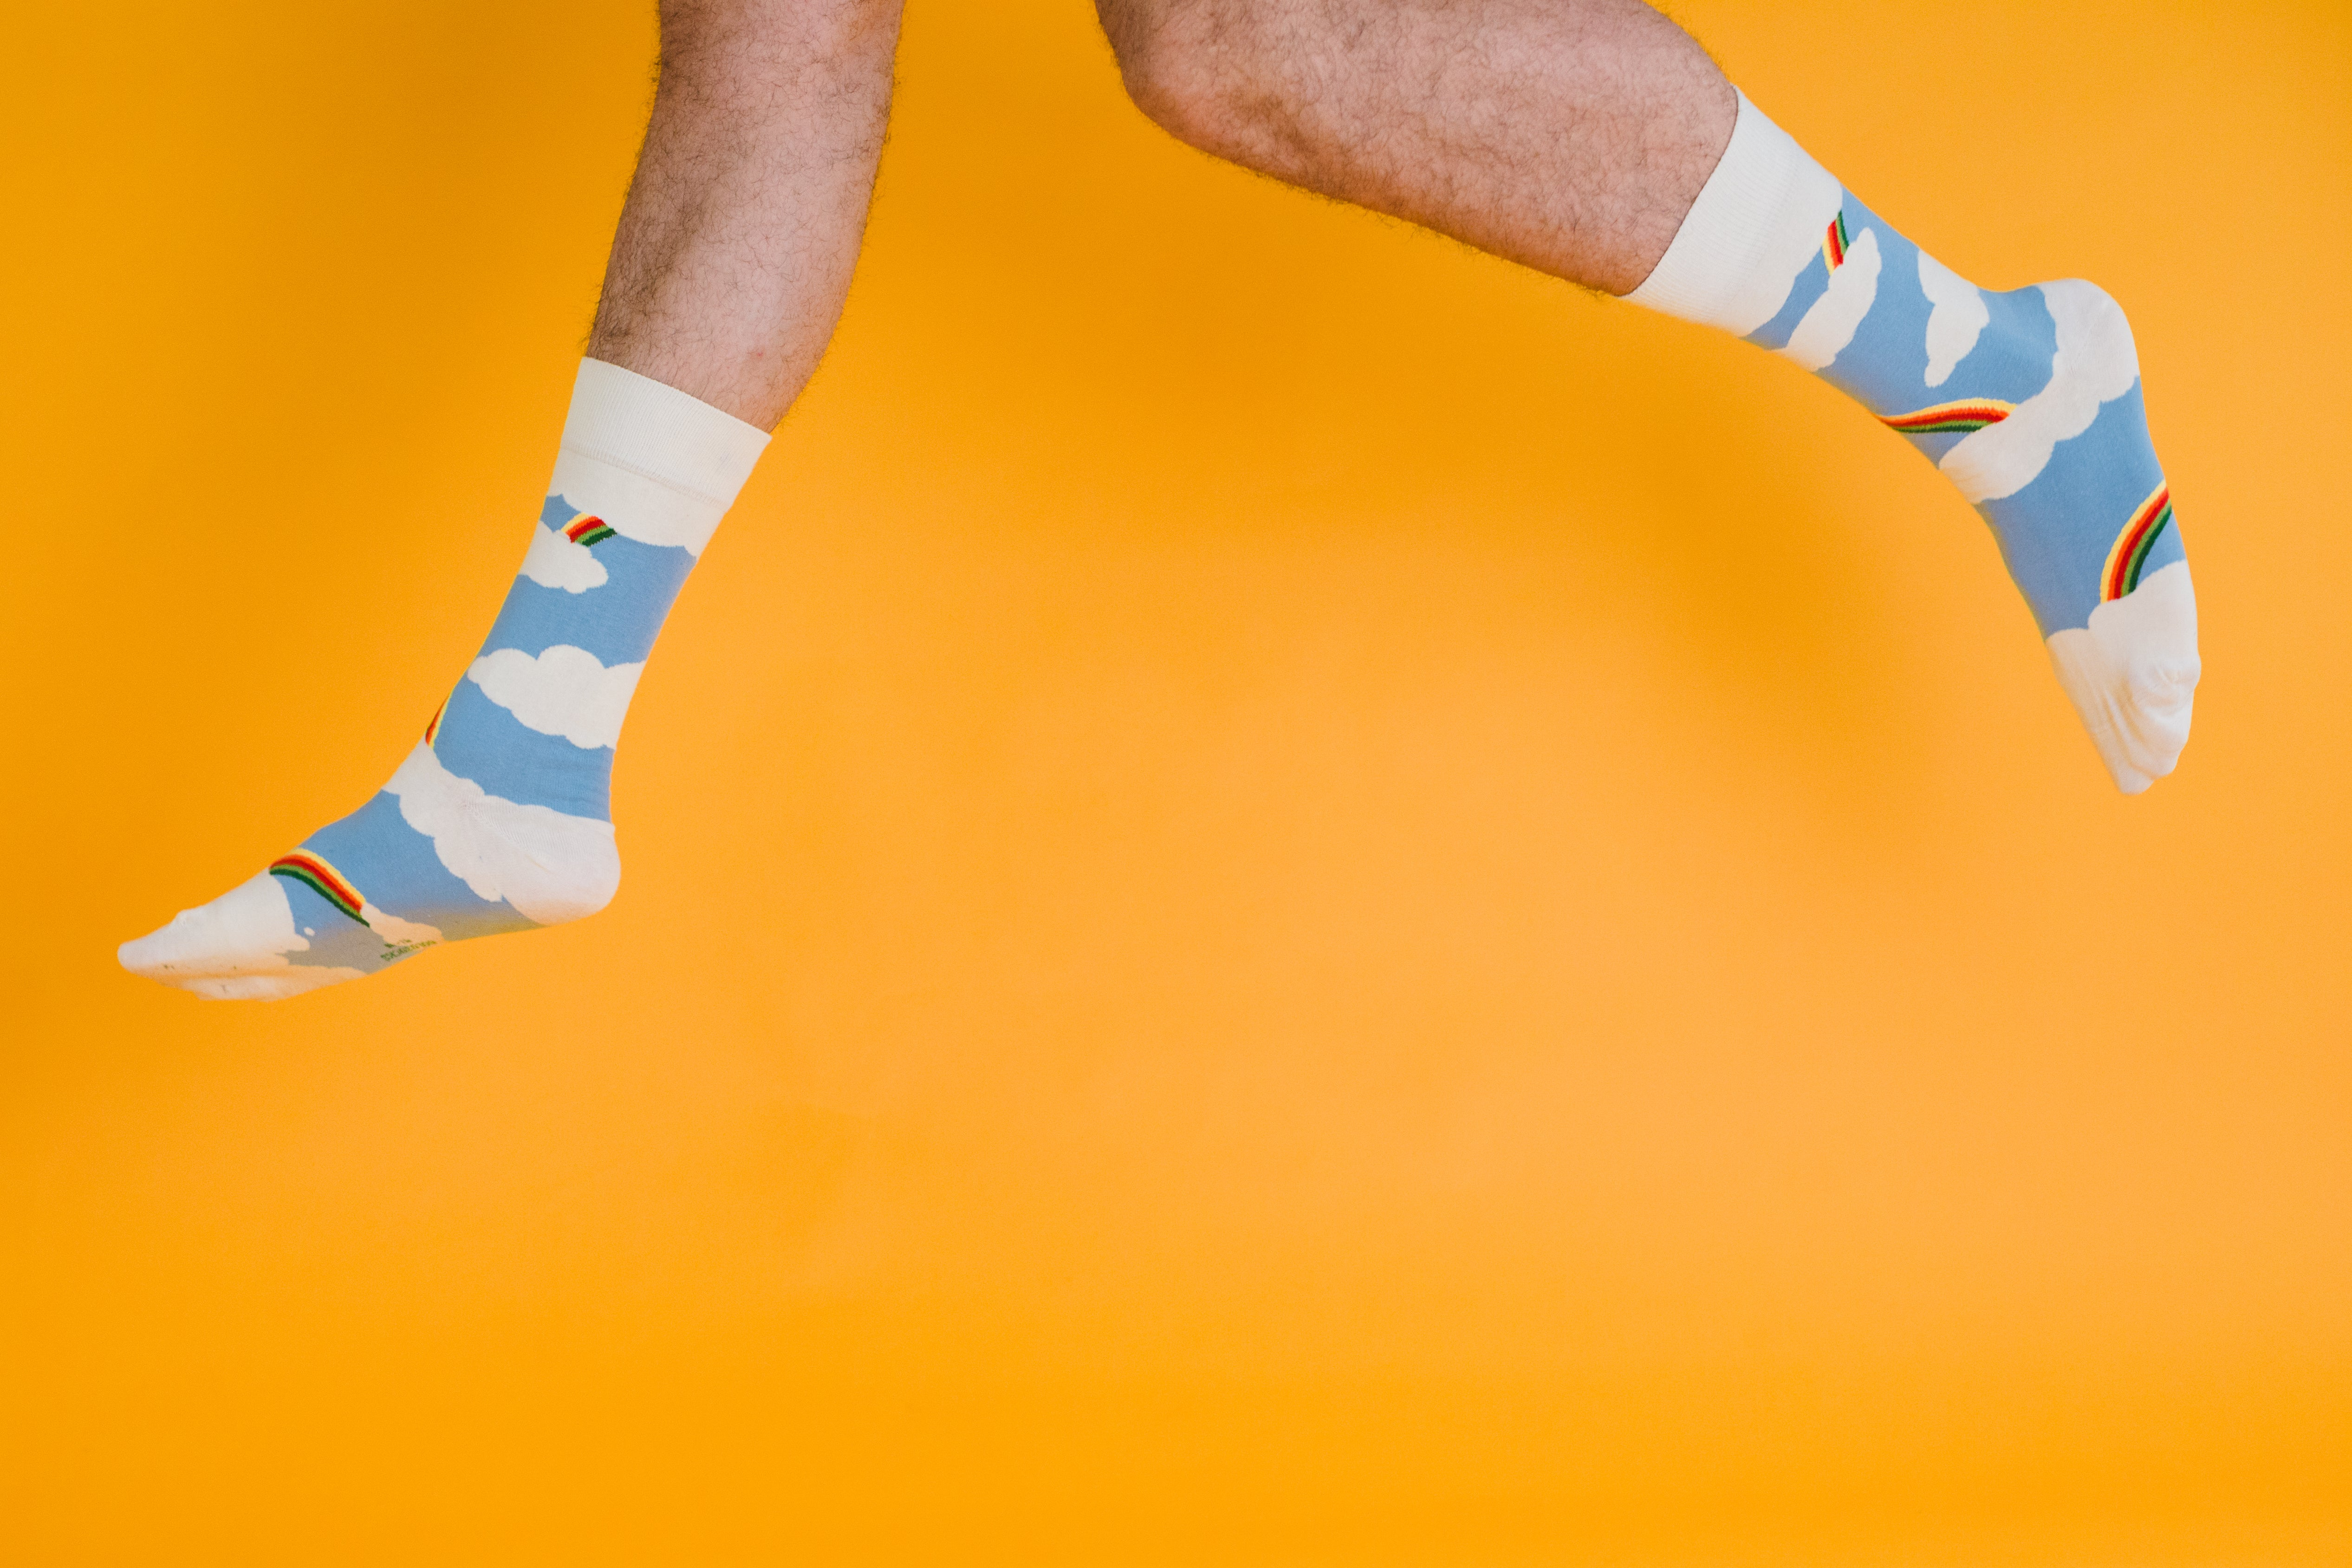 Rainbow, a regular pair of organic cotton crew dress socks made by SOLOSOCKS™ of Denmark. Sustainable Danish design socks for men & women | High quality but cheap and durable fashion socks | Worldwide delivery | Free shipping above €40 | Recyclable and environmentally friendly packaging